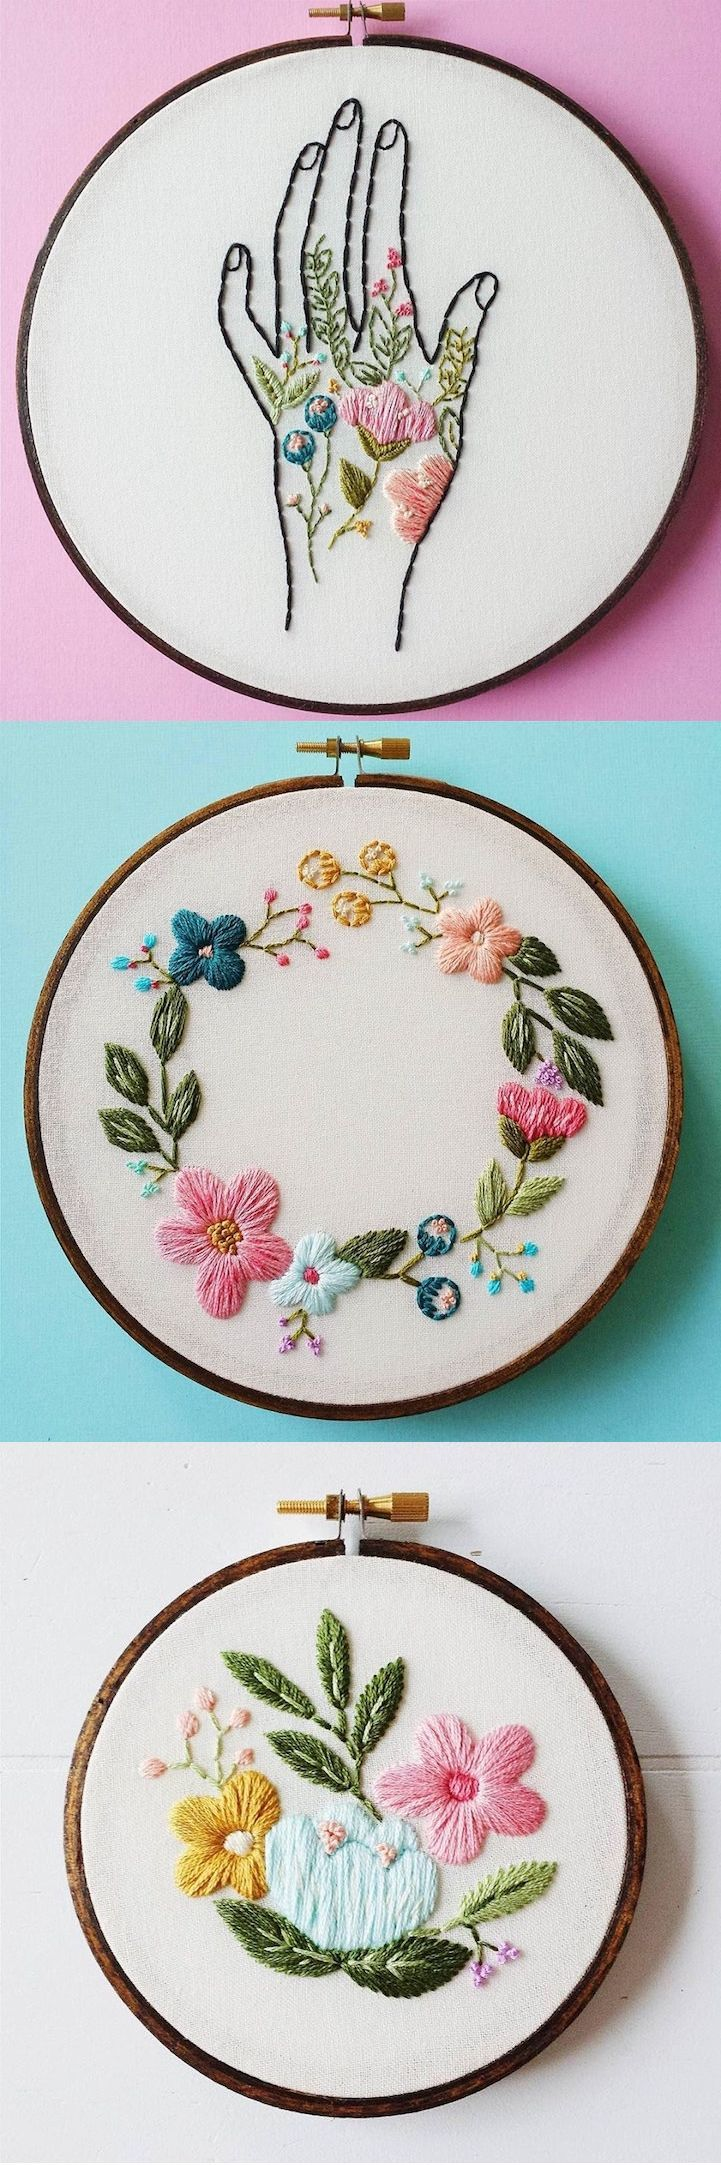 A brilliant combination of flowers and thread by Cinder & Honey. #etsy #embroidery